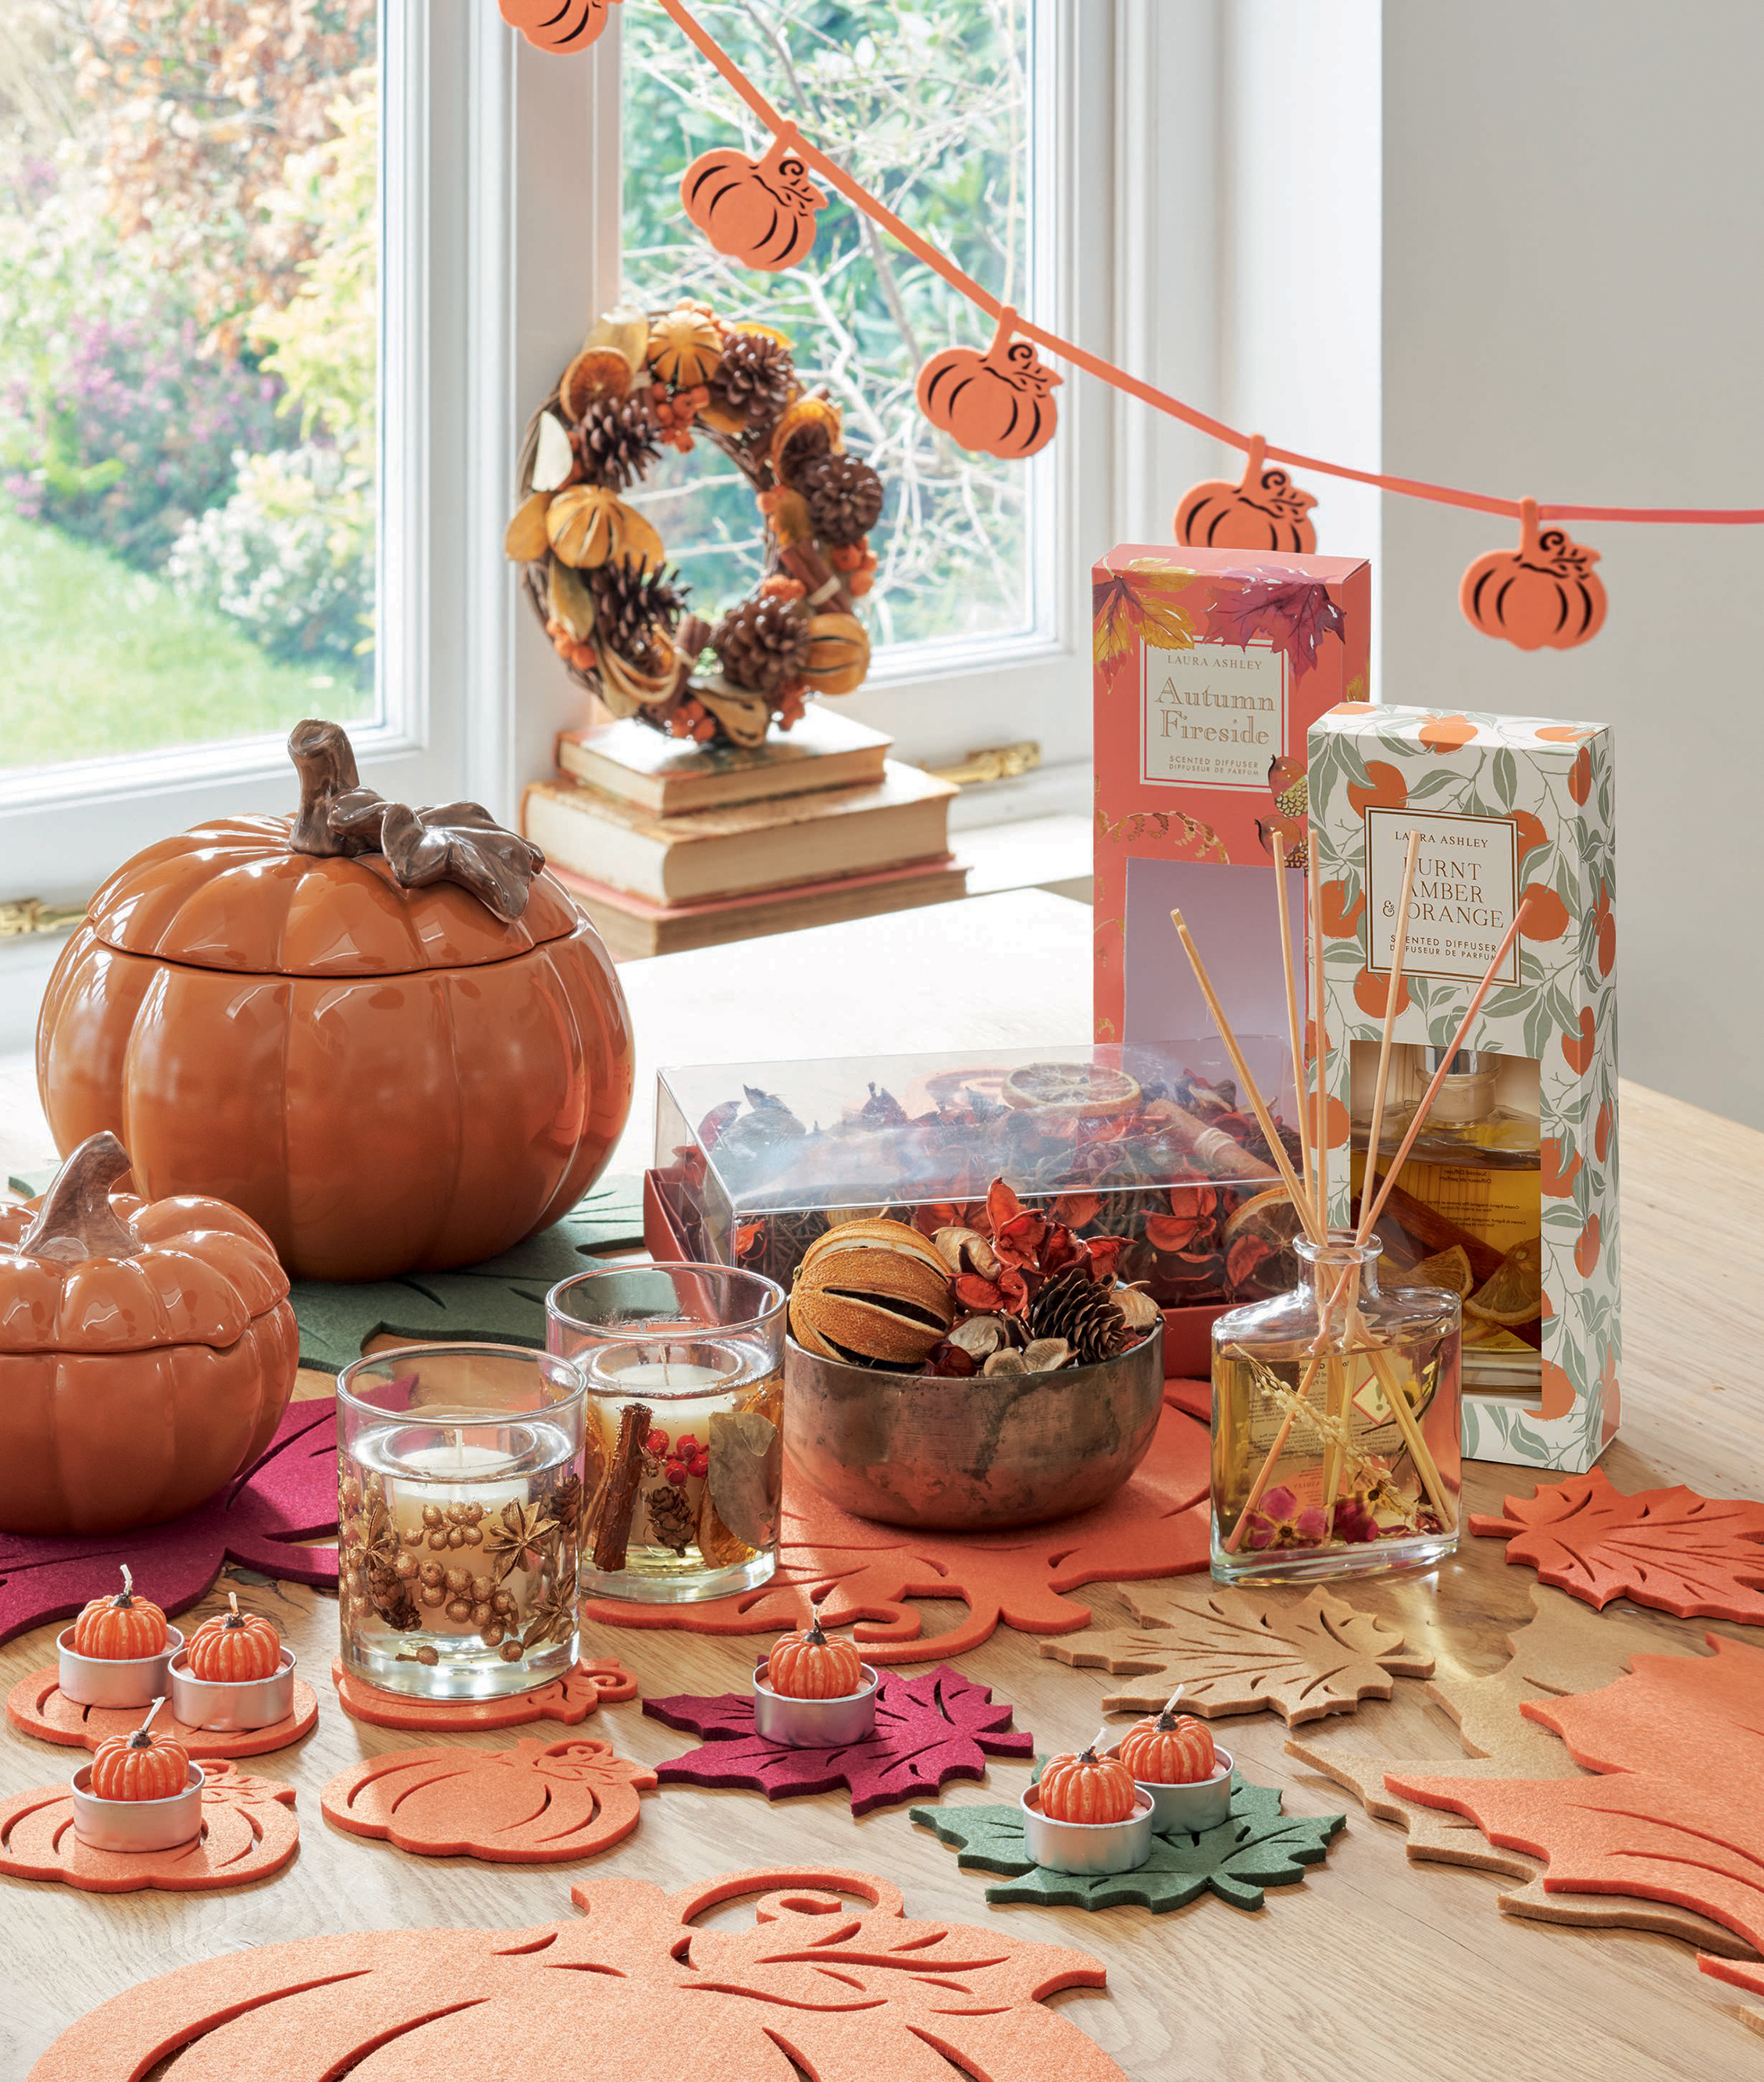 Autumn accessories pumpkins autumn wreath leaves